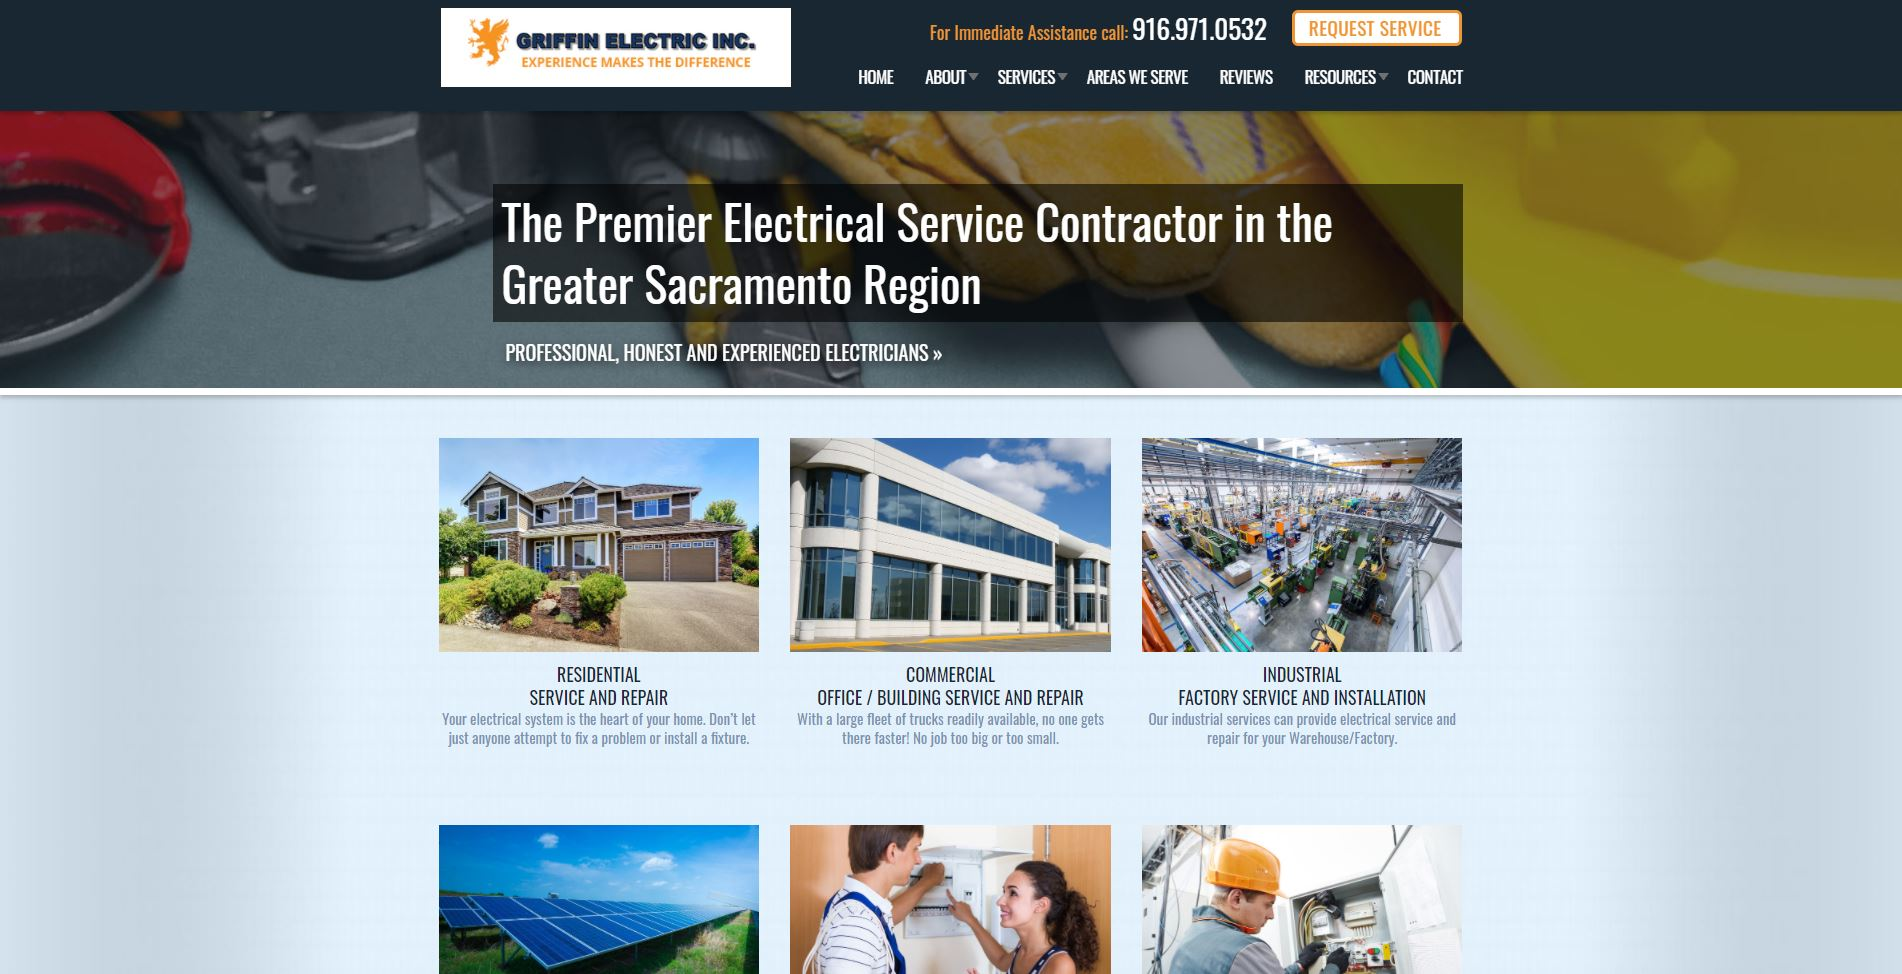 griffin electric inc